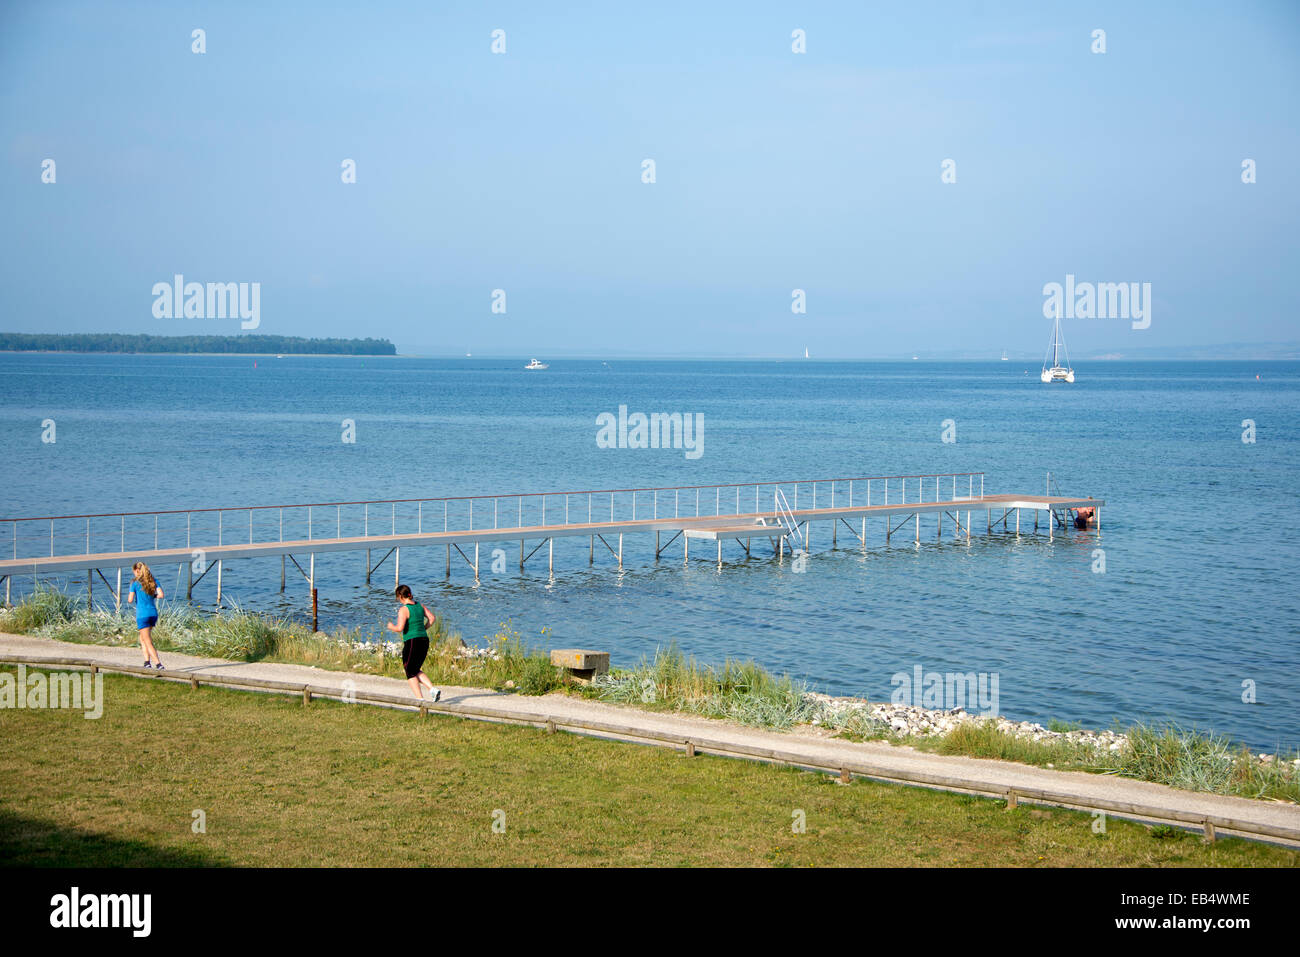 Two early morning joggers jogging along the shore of the Kattegat Sea at Ebeltoft in  East Jutland, Denmark - Stock Image